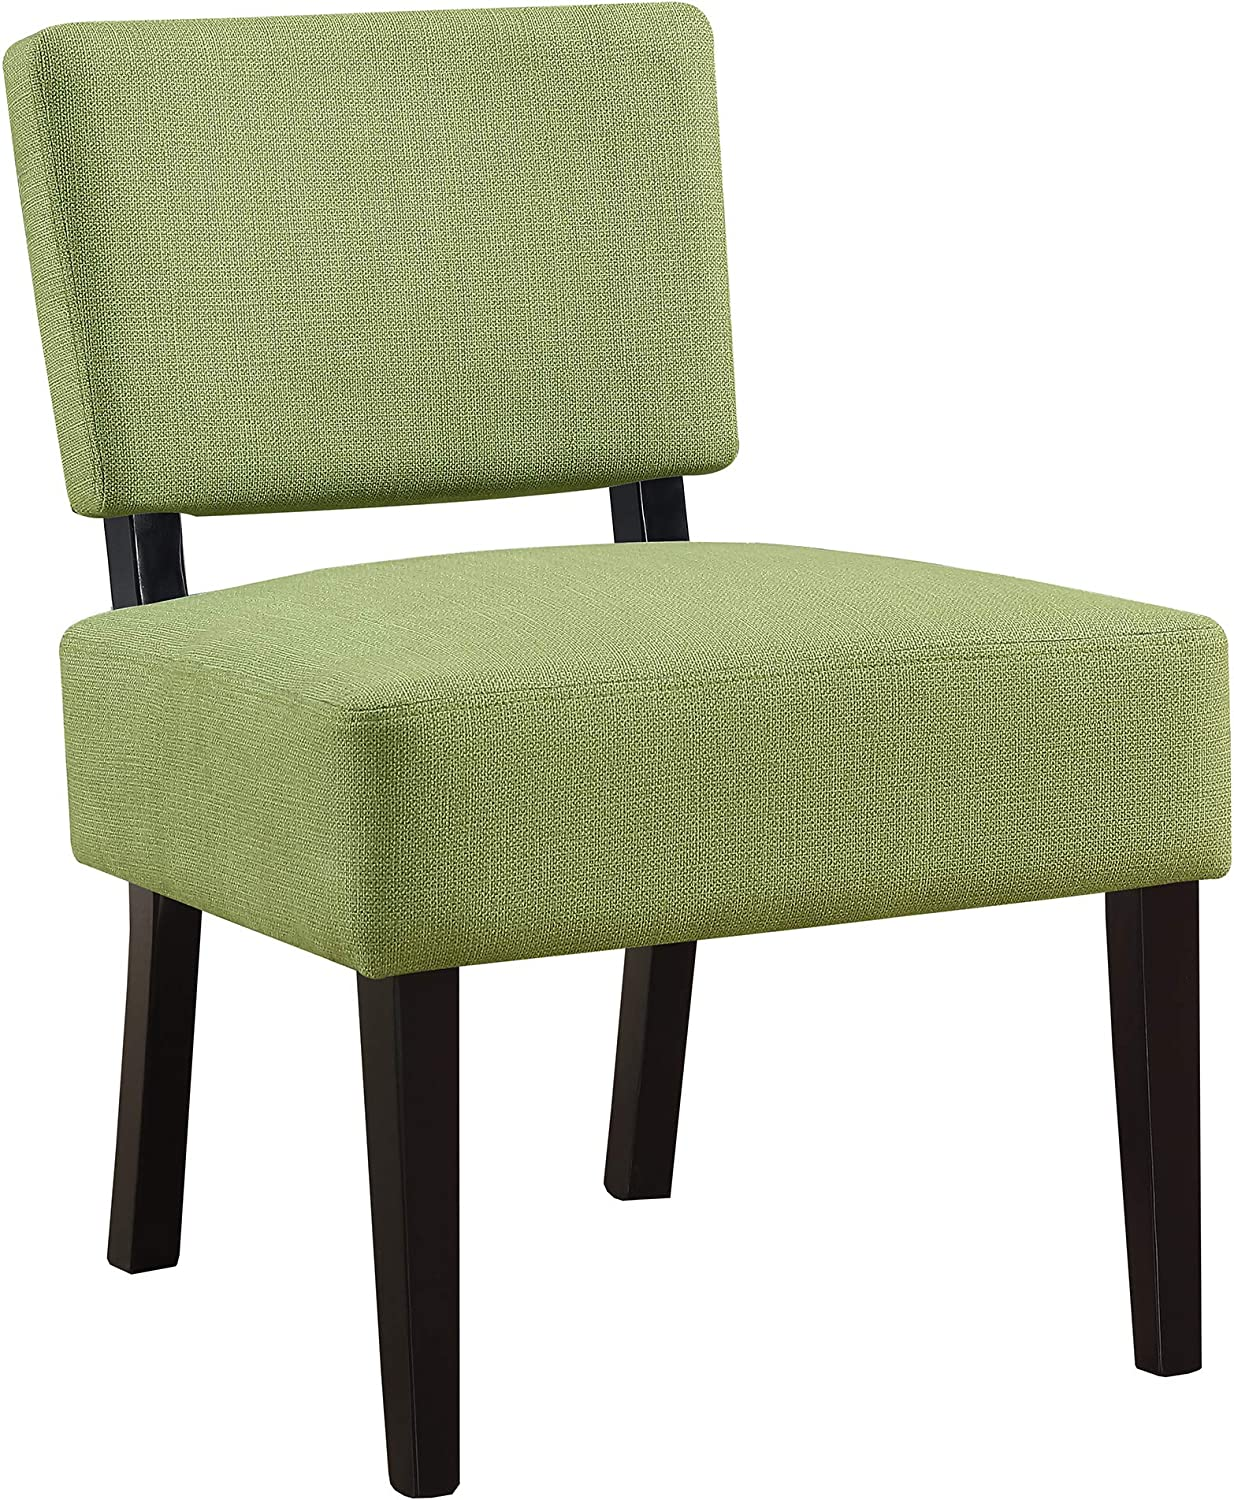 Monarch Specialties Accent Chair - Lime Green Fabric, 22.75  L X 27.5  W X 31.5  H